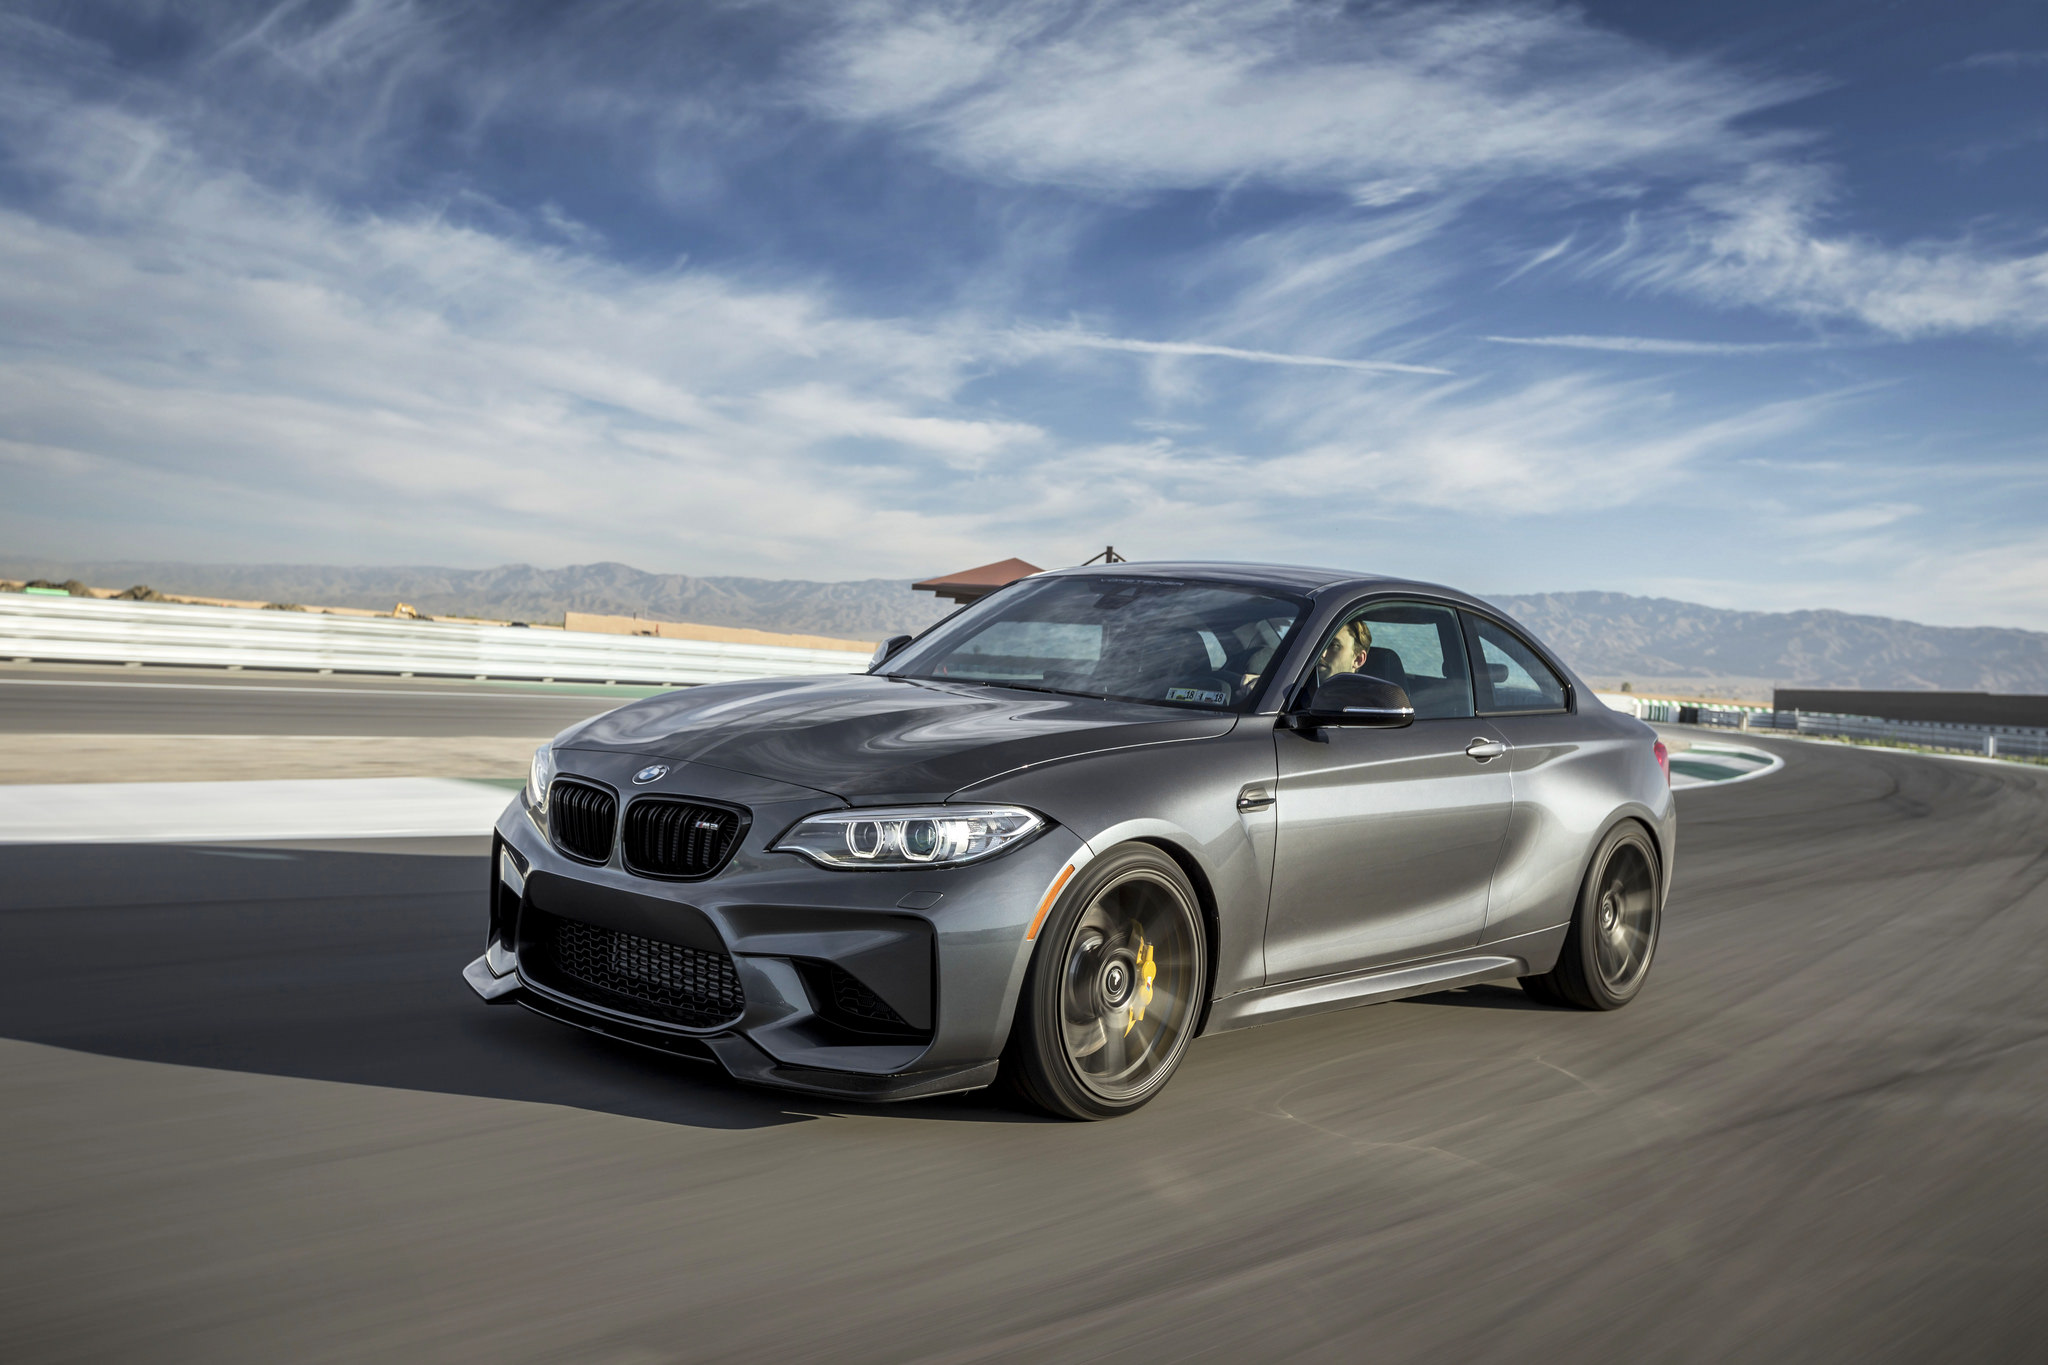 This Is Vorsteiner S New Take On Bmw M2 Coupe Bmw Car Tuning